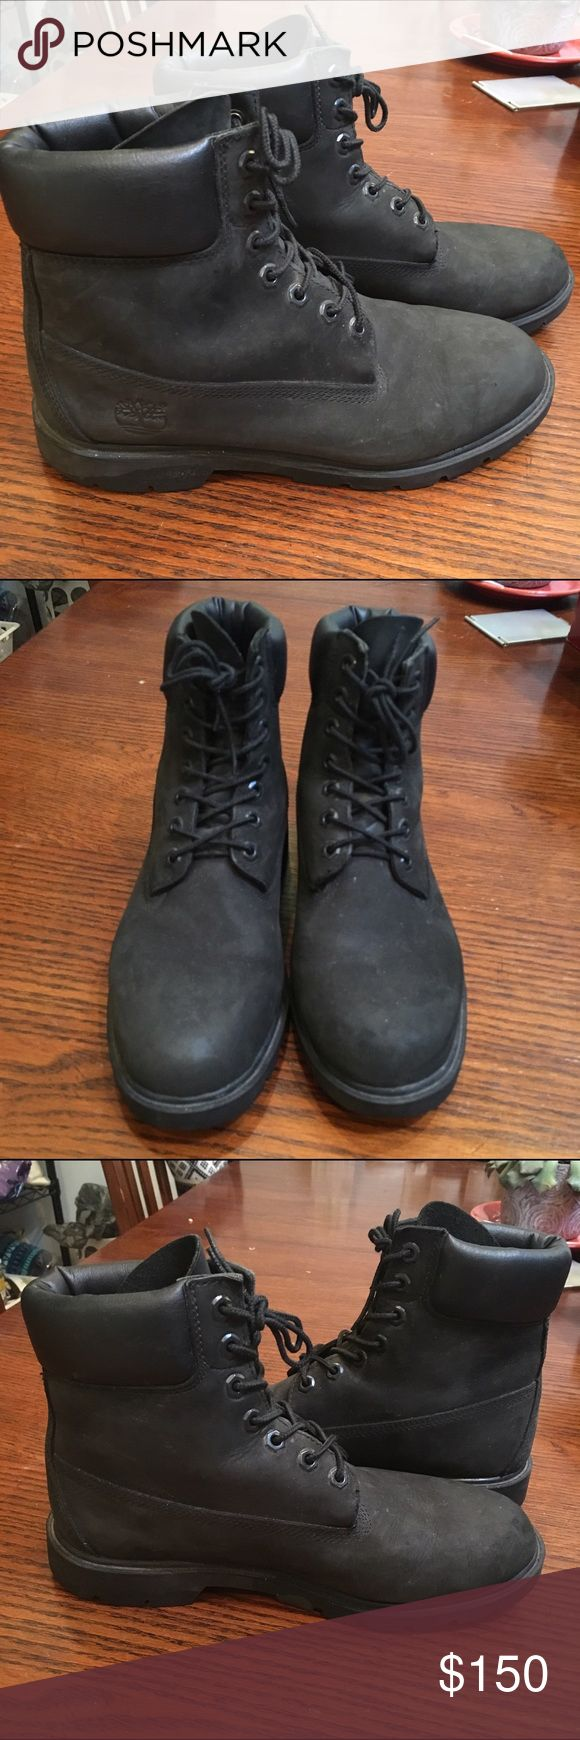 All black Timberland boots All black classic Timberland boots! Beautiful condition barely worn. Men's size 8. Translates to women's 9.5 Timberland Shoes Winter & Rain Boots